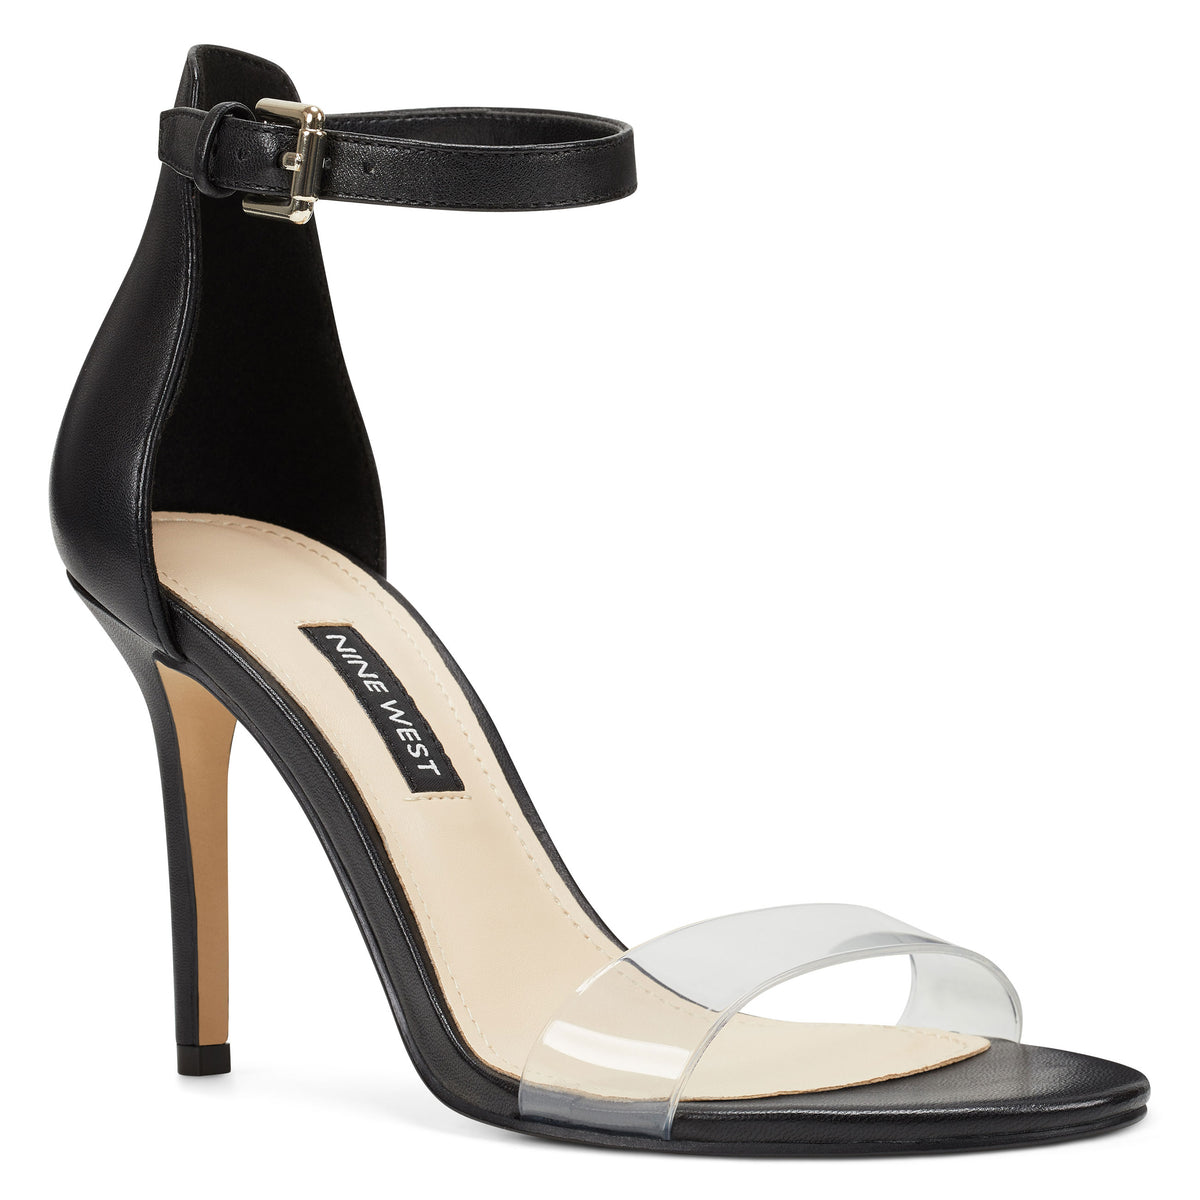 mana-ankle-strap-sandals-in-black-clear